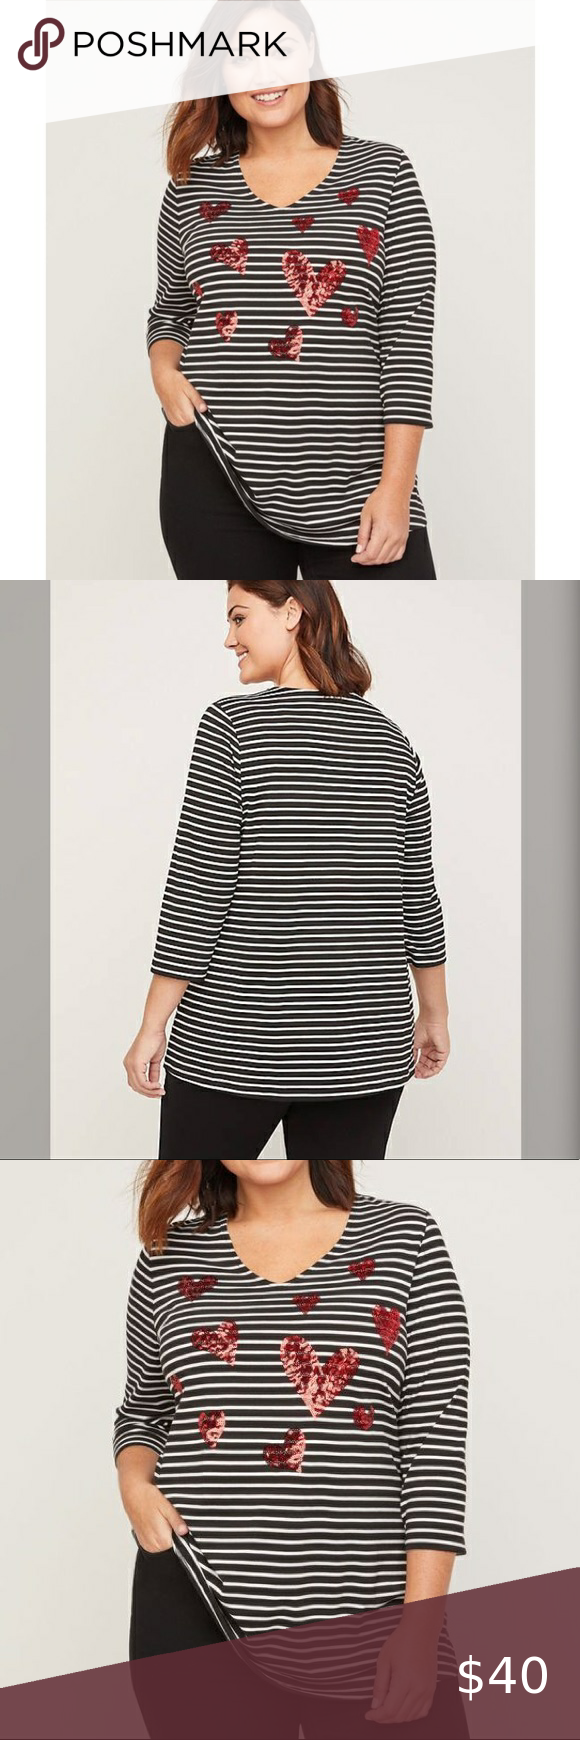 Photo of PLUS SIZE Sequin Hearts Striped Tee CATHERINES / Sequin Heart Striped Tee US PLU…